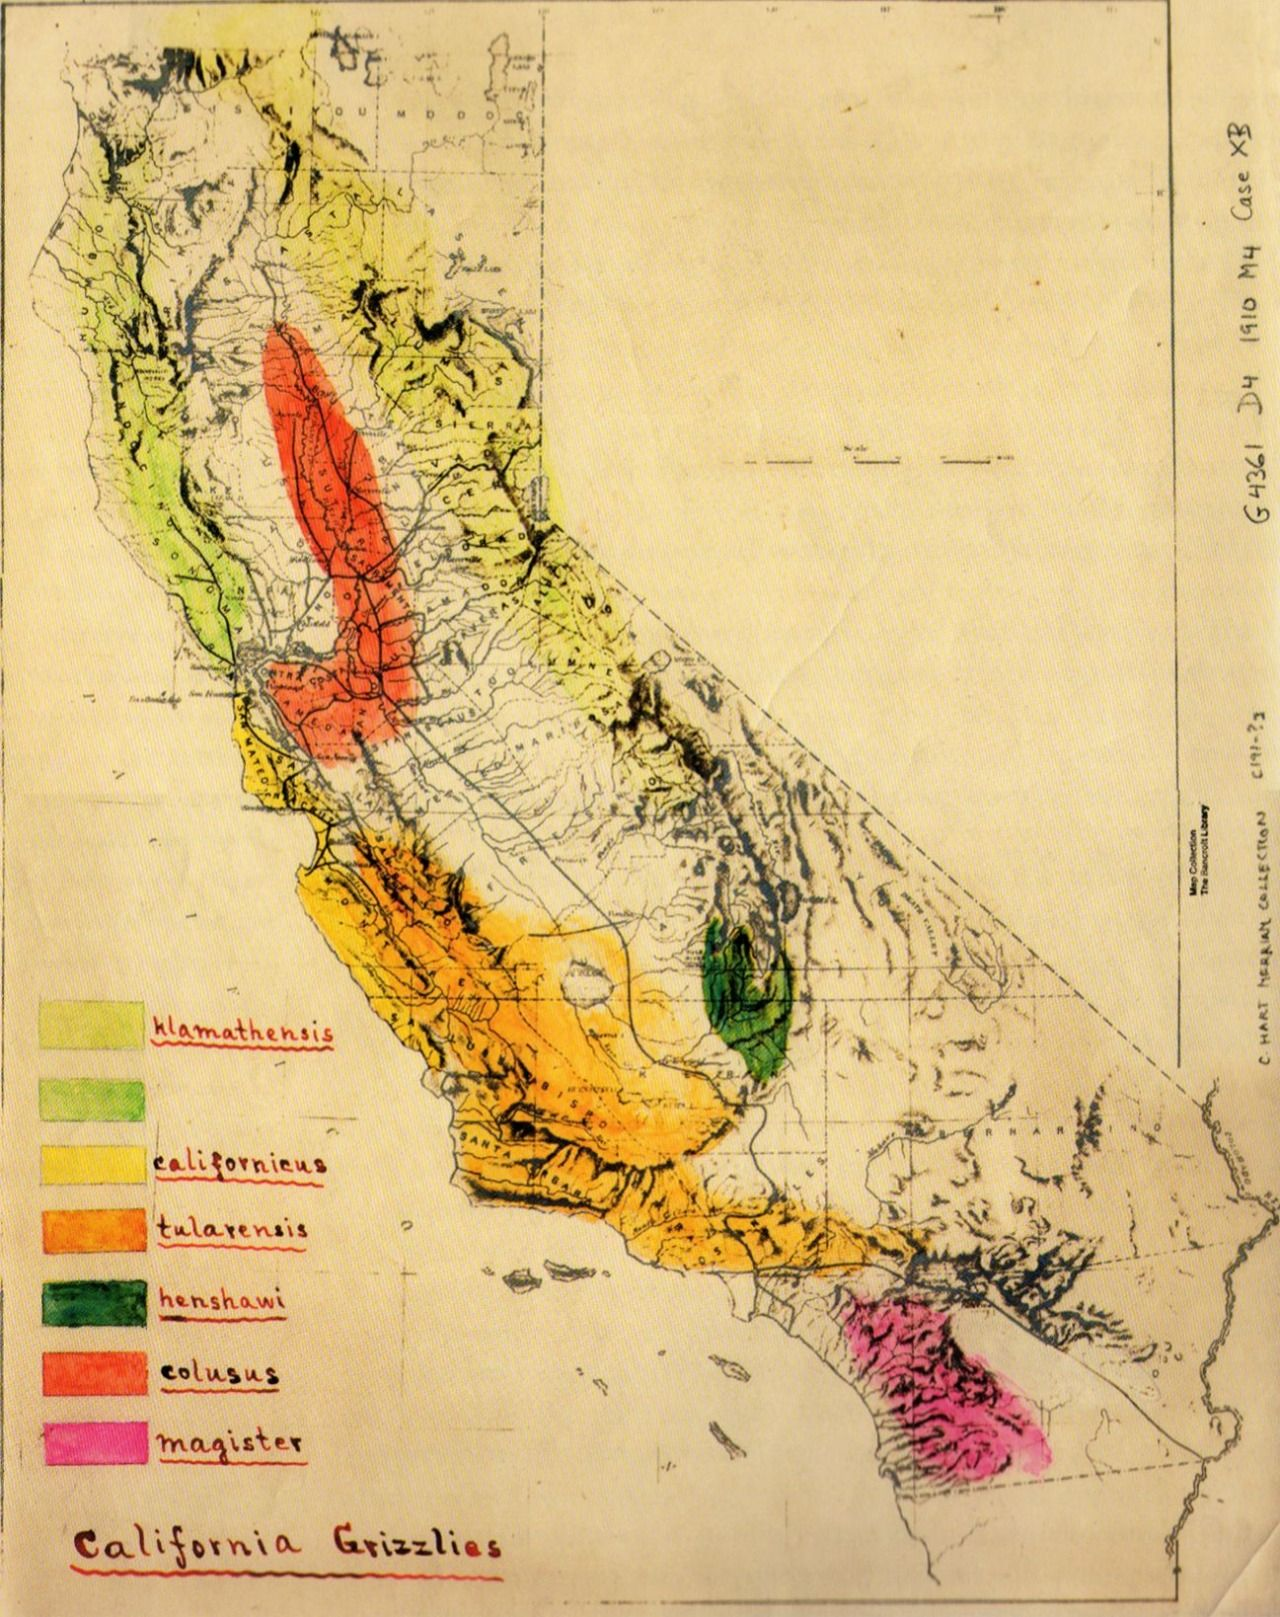 Bears In California Map Grizzly Bear in California Map (With images) | California map, Map